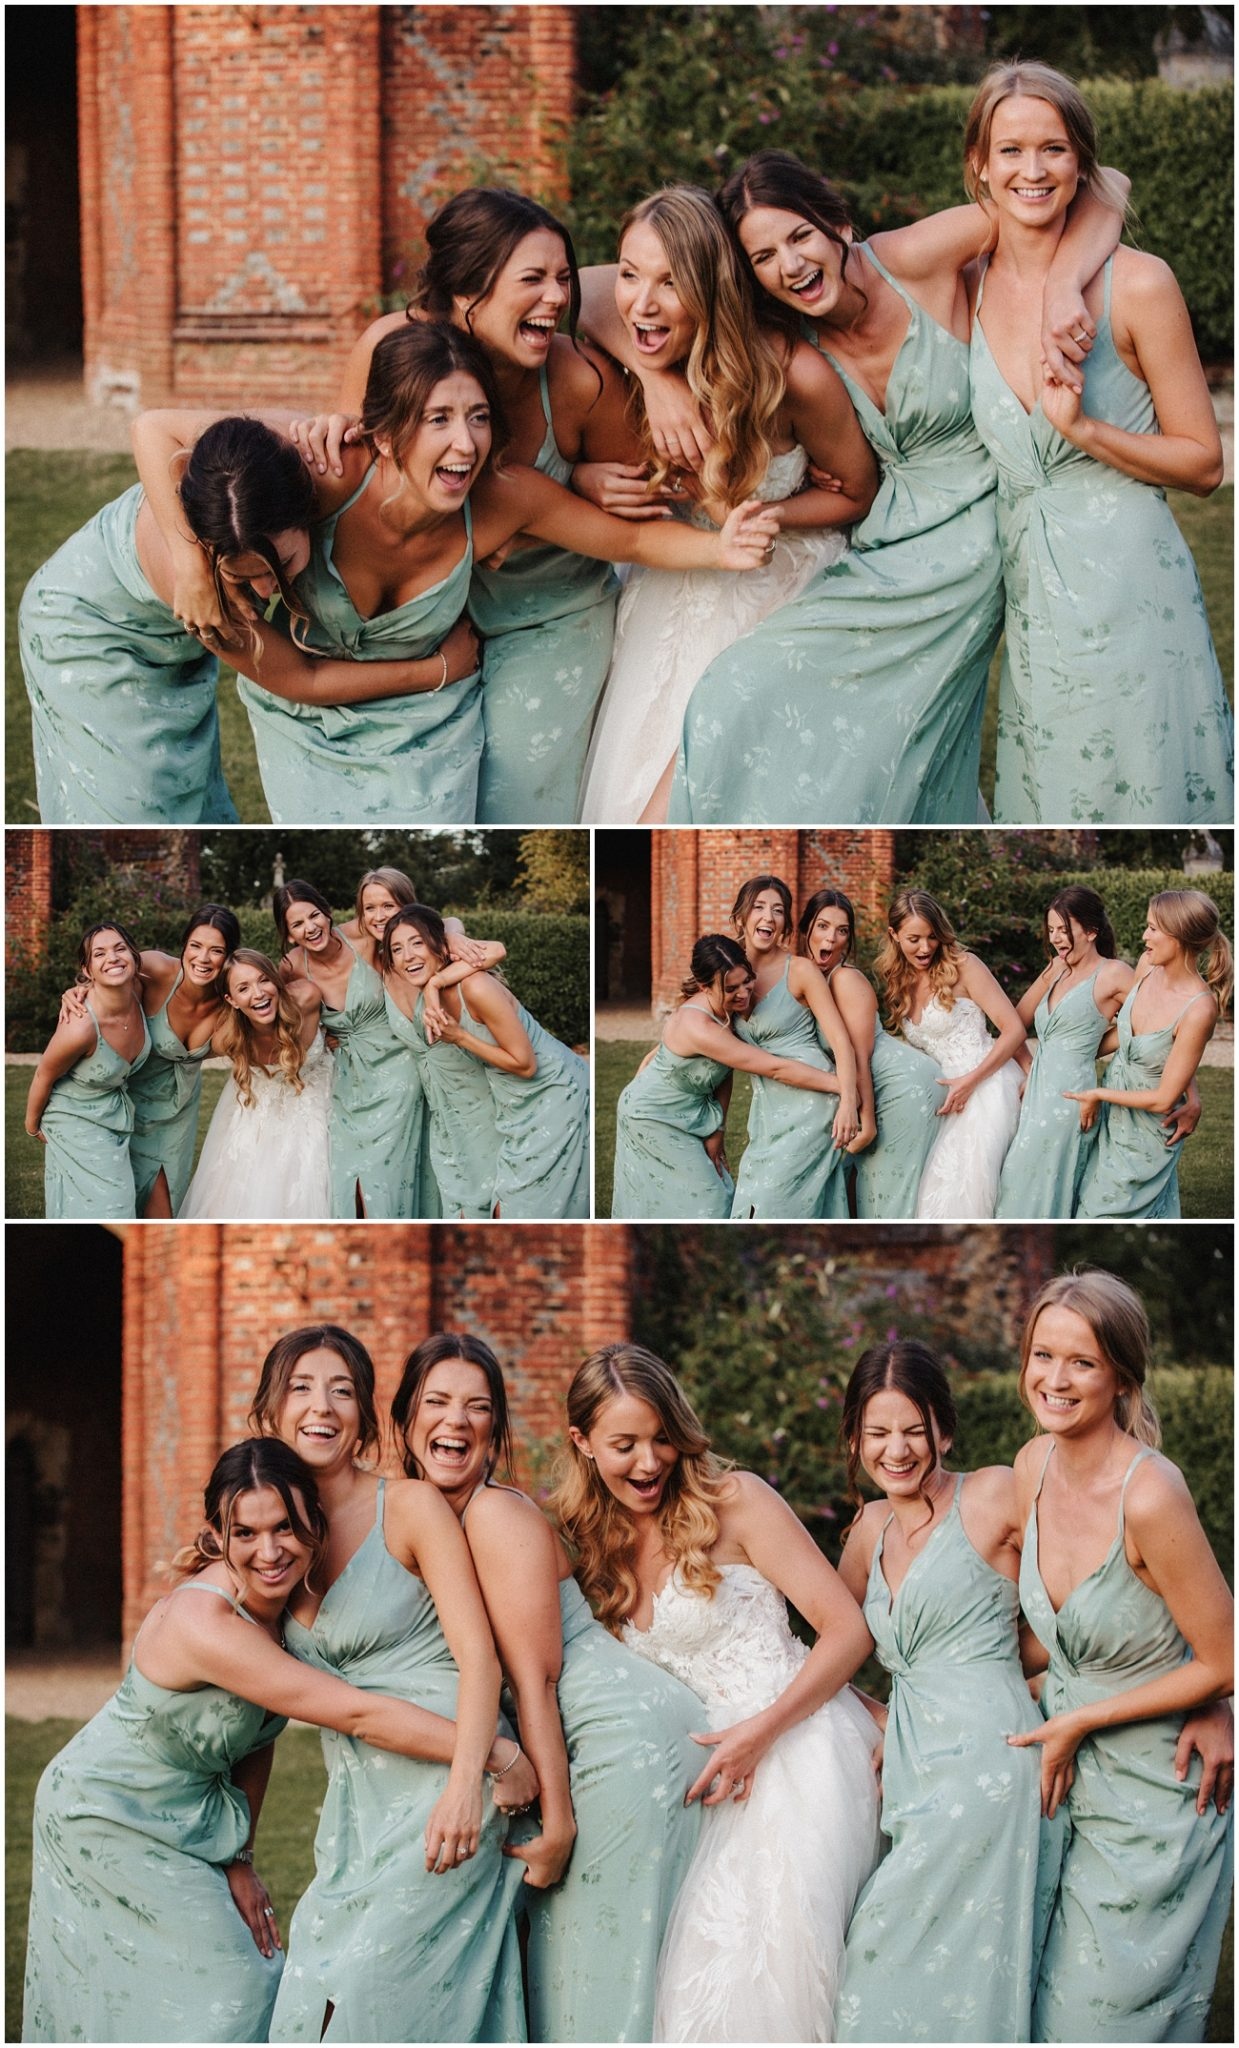 Bride and her bridesmaids have fun together